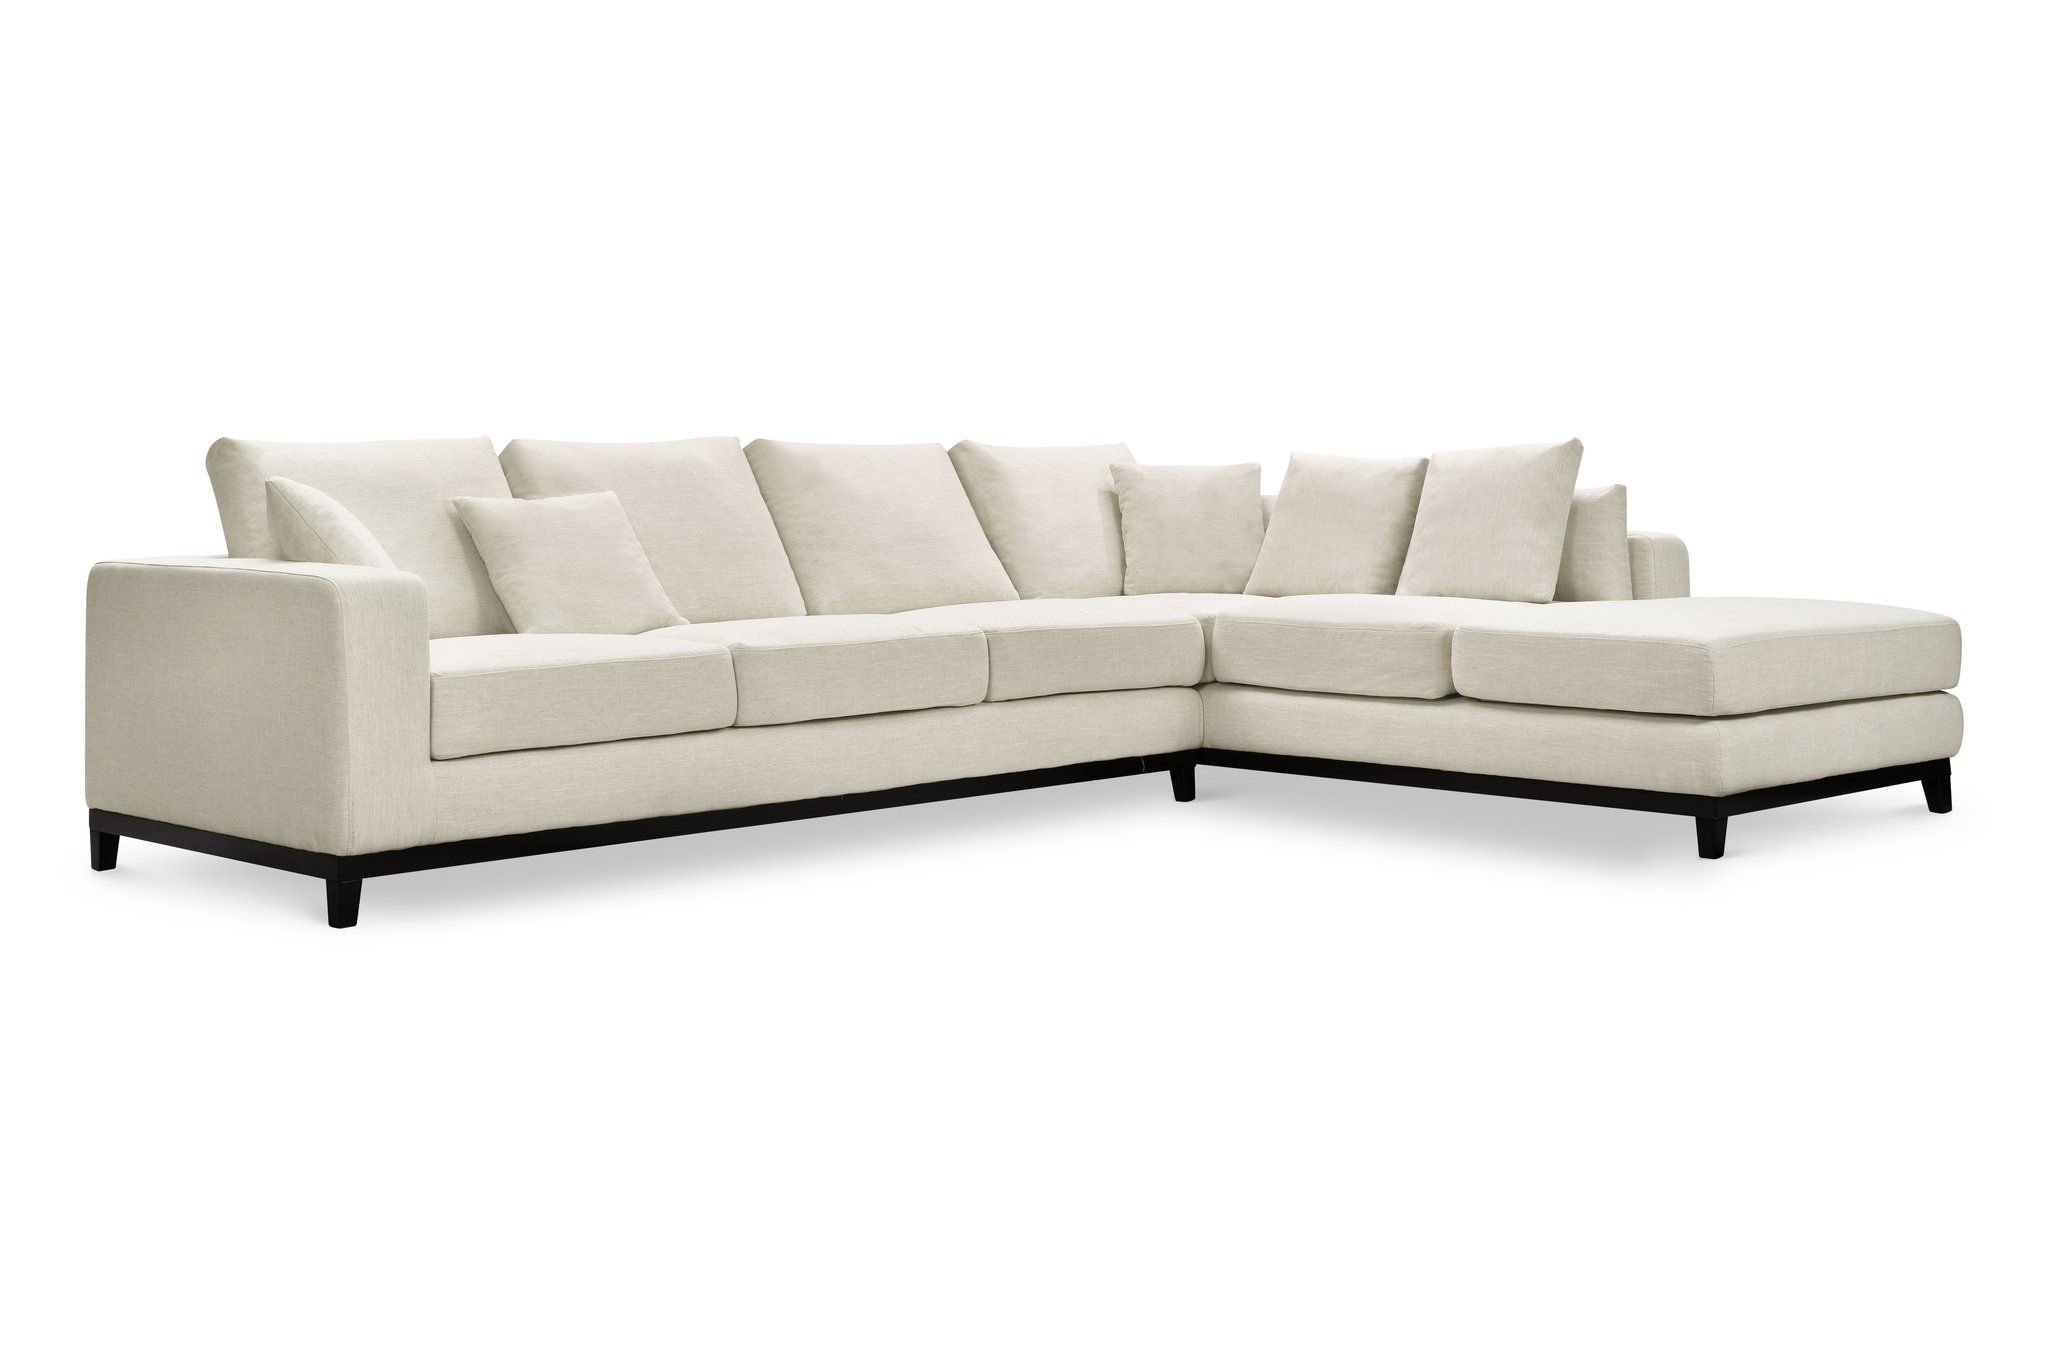 Terrific Kellan Sectional Sofa For The Home Sectional Sofa Sofa Pabps2019 Chair Design Images Pabps2019Com